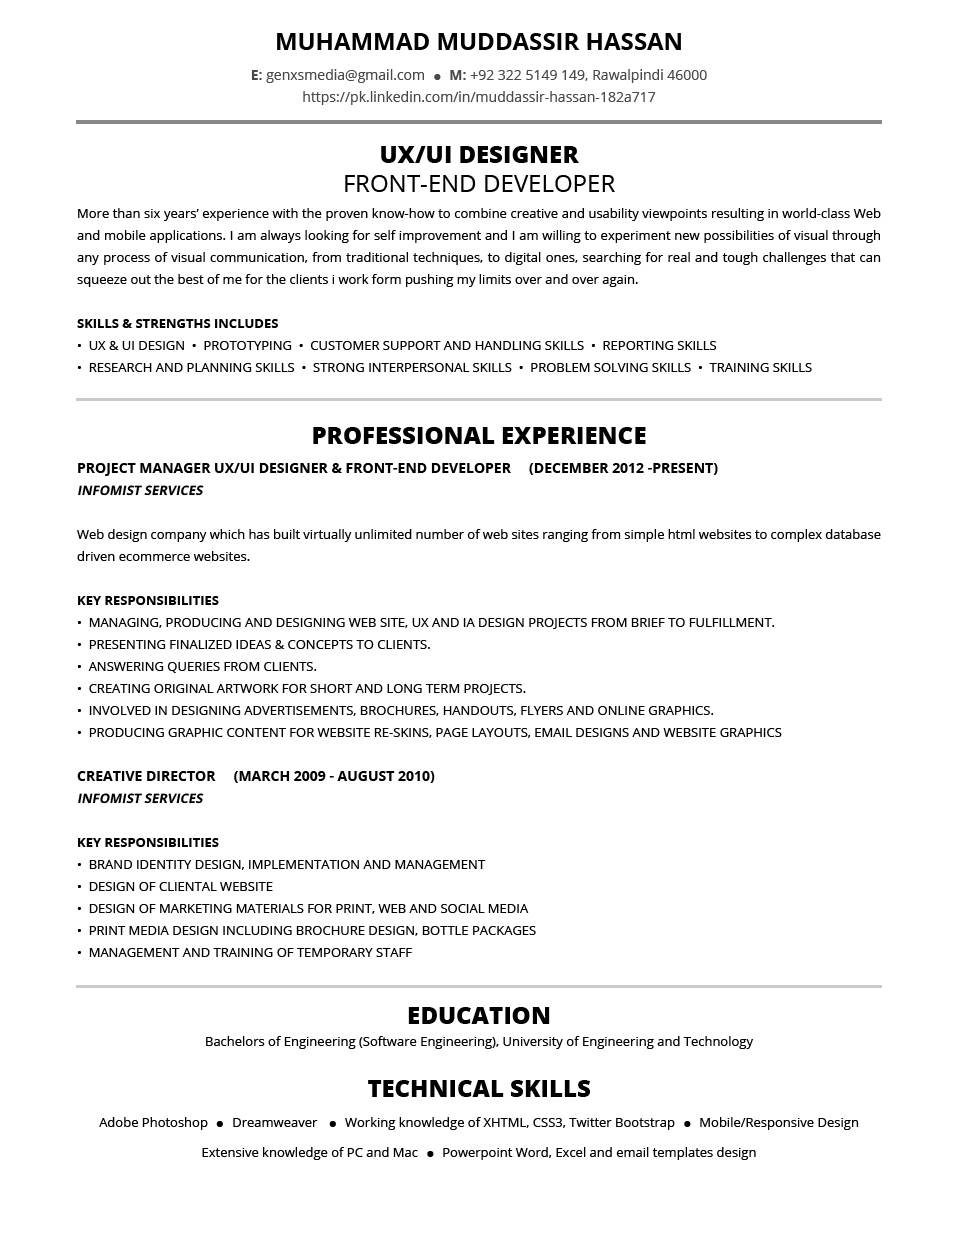 Reasons Why This Resume Is Excellent- Muddassir Hassan CV